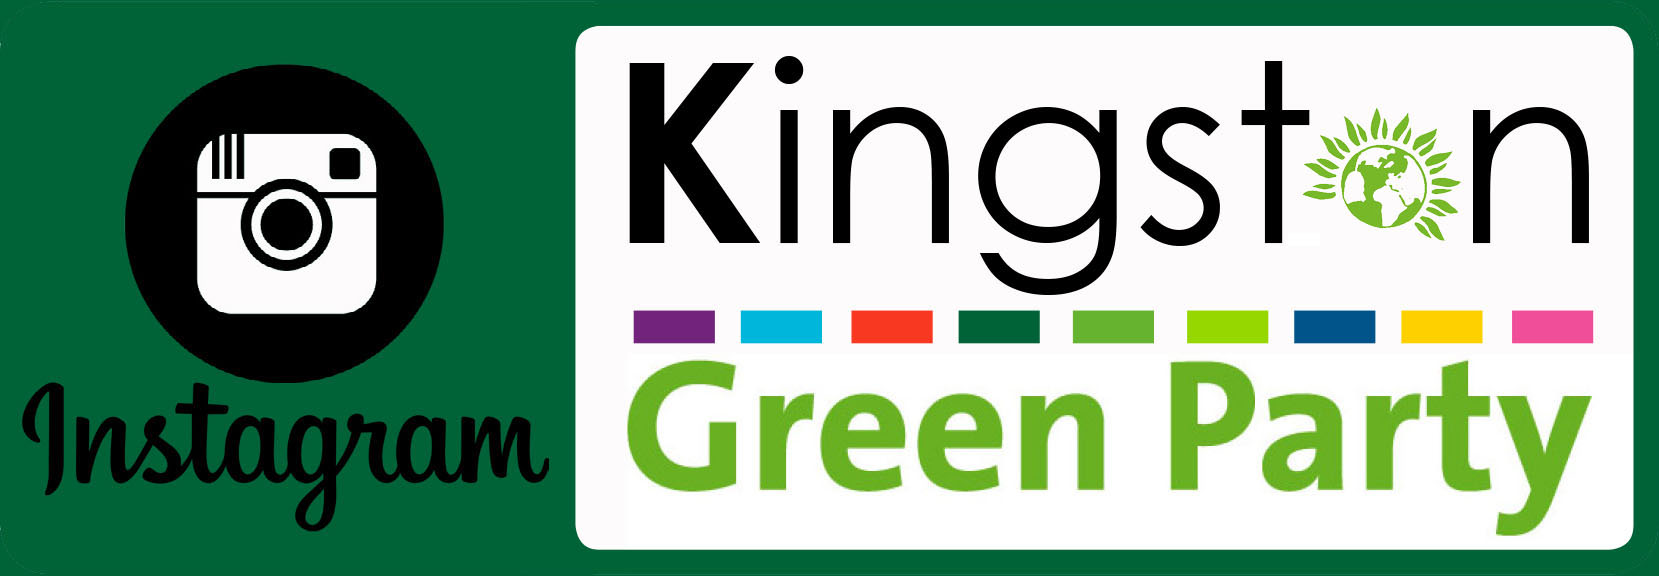 Kingston Green Party Instagram